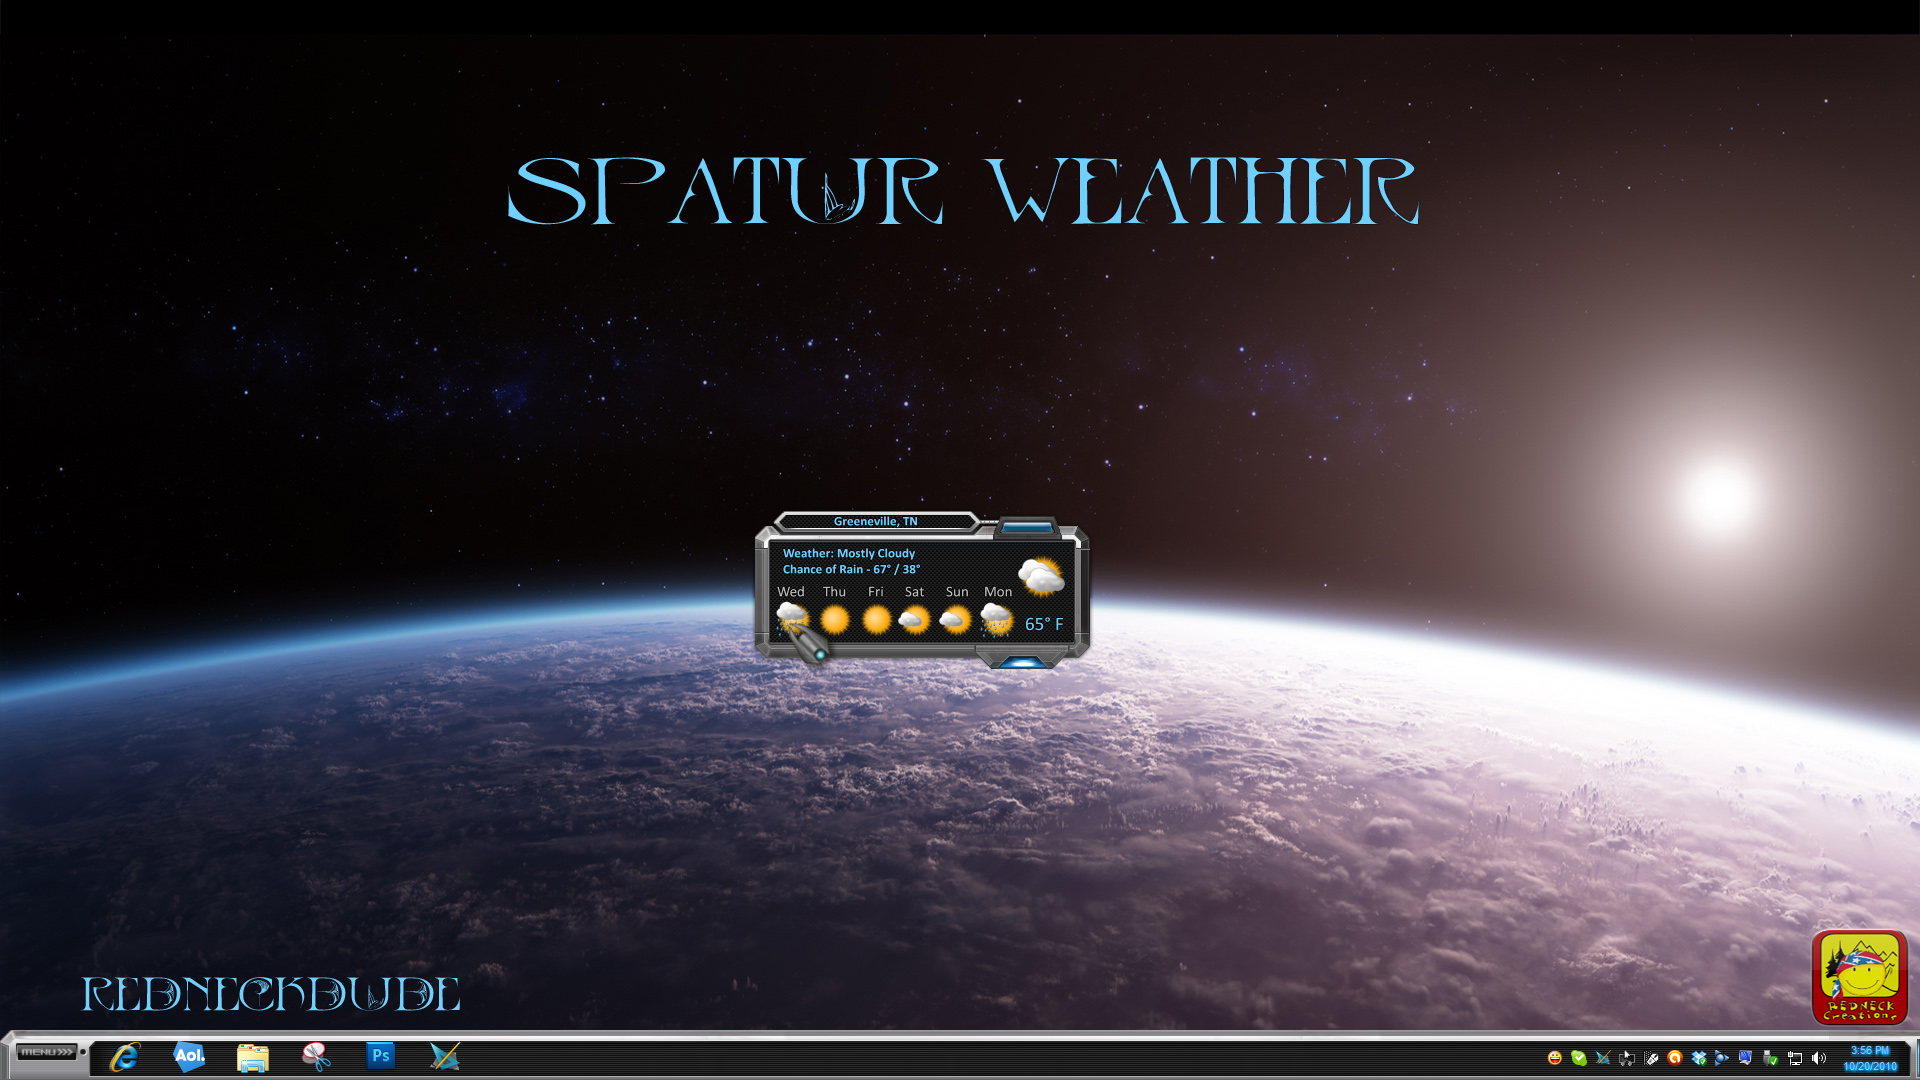 SPatur Weather